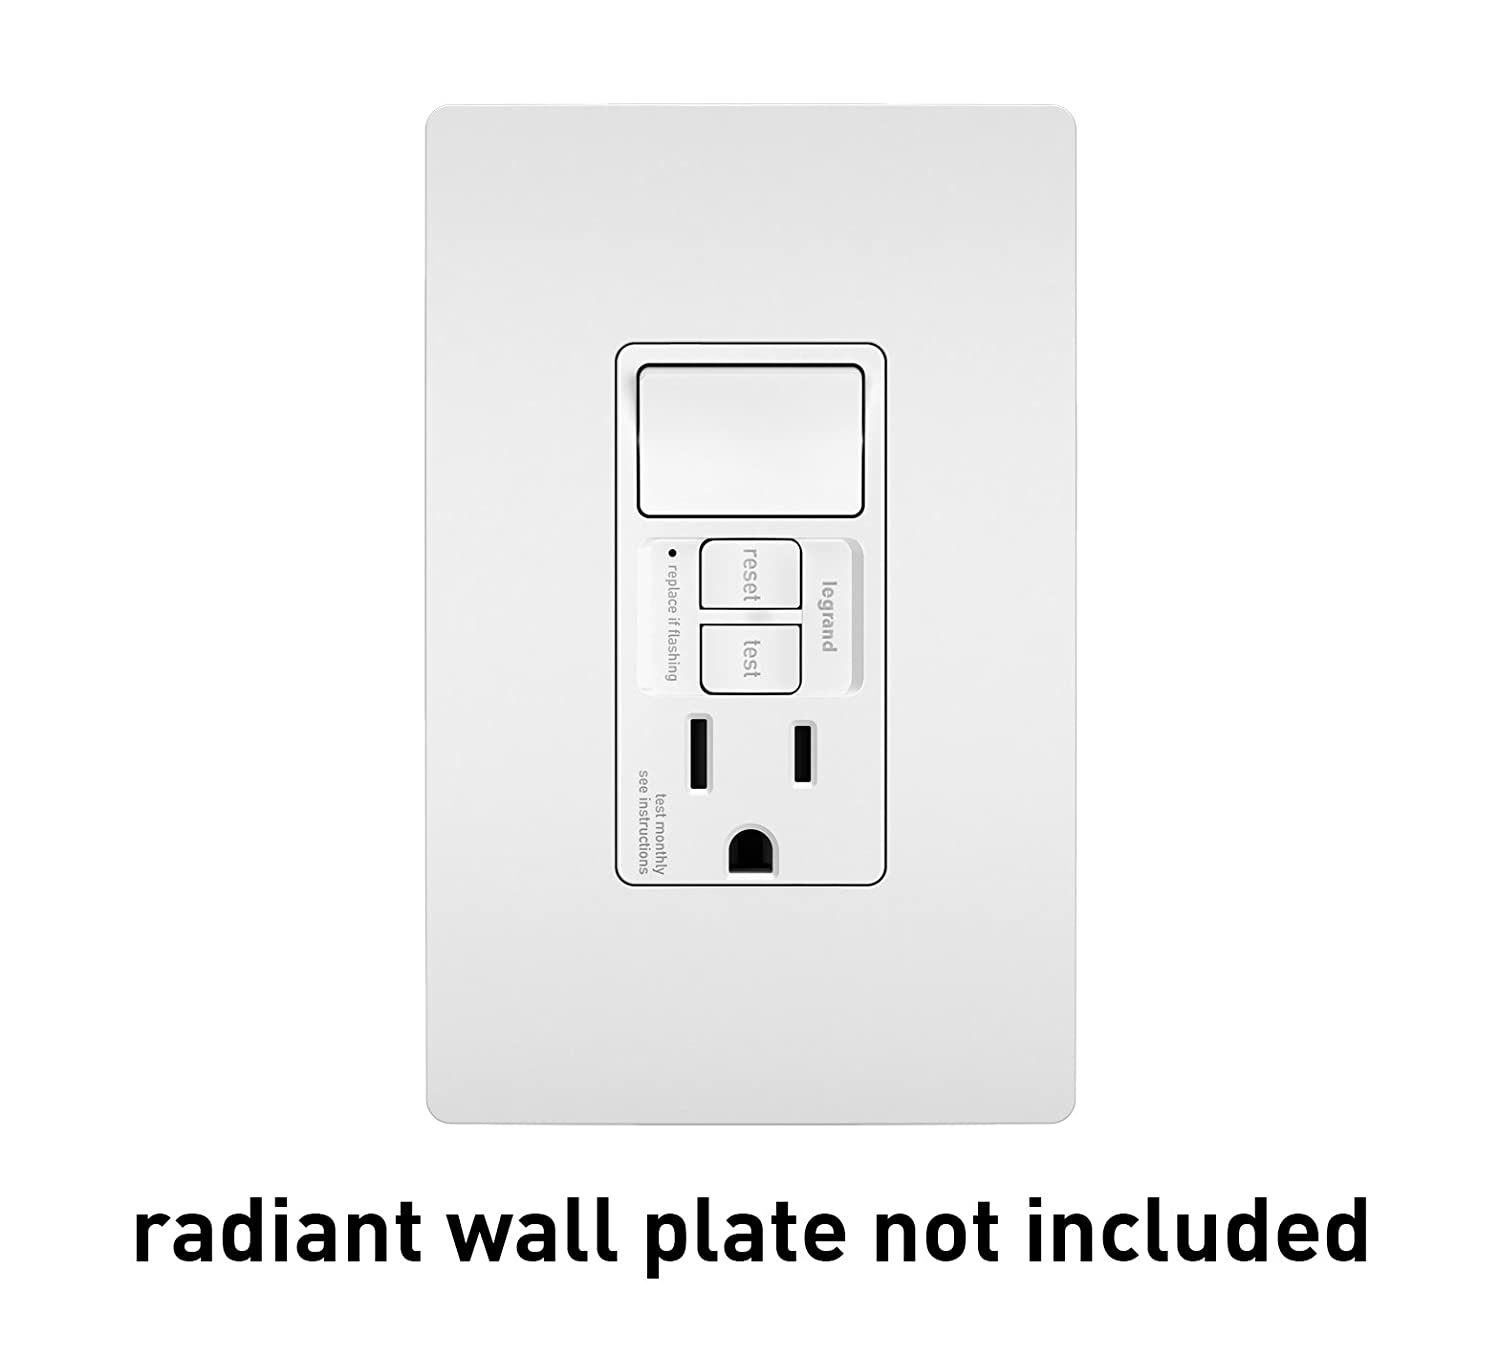 Legrand Pass Seymour Radiant 1597swttrwccd4 15 Amp Combination Switch And Gfci Outlet Wiring Diagram Self Test Tamper Resistant Safety Single Pole White Ground Fault